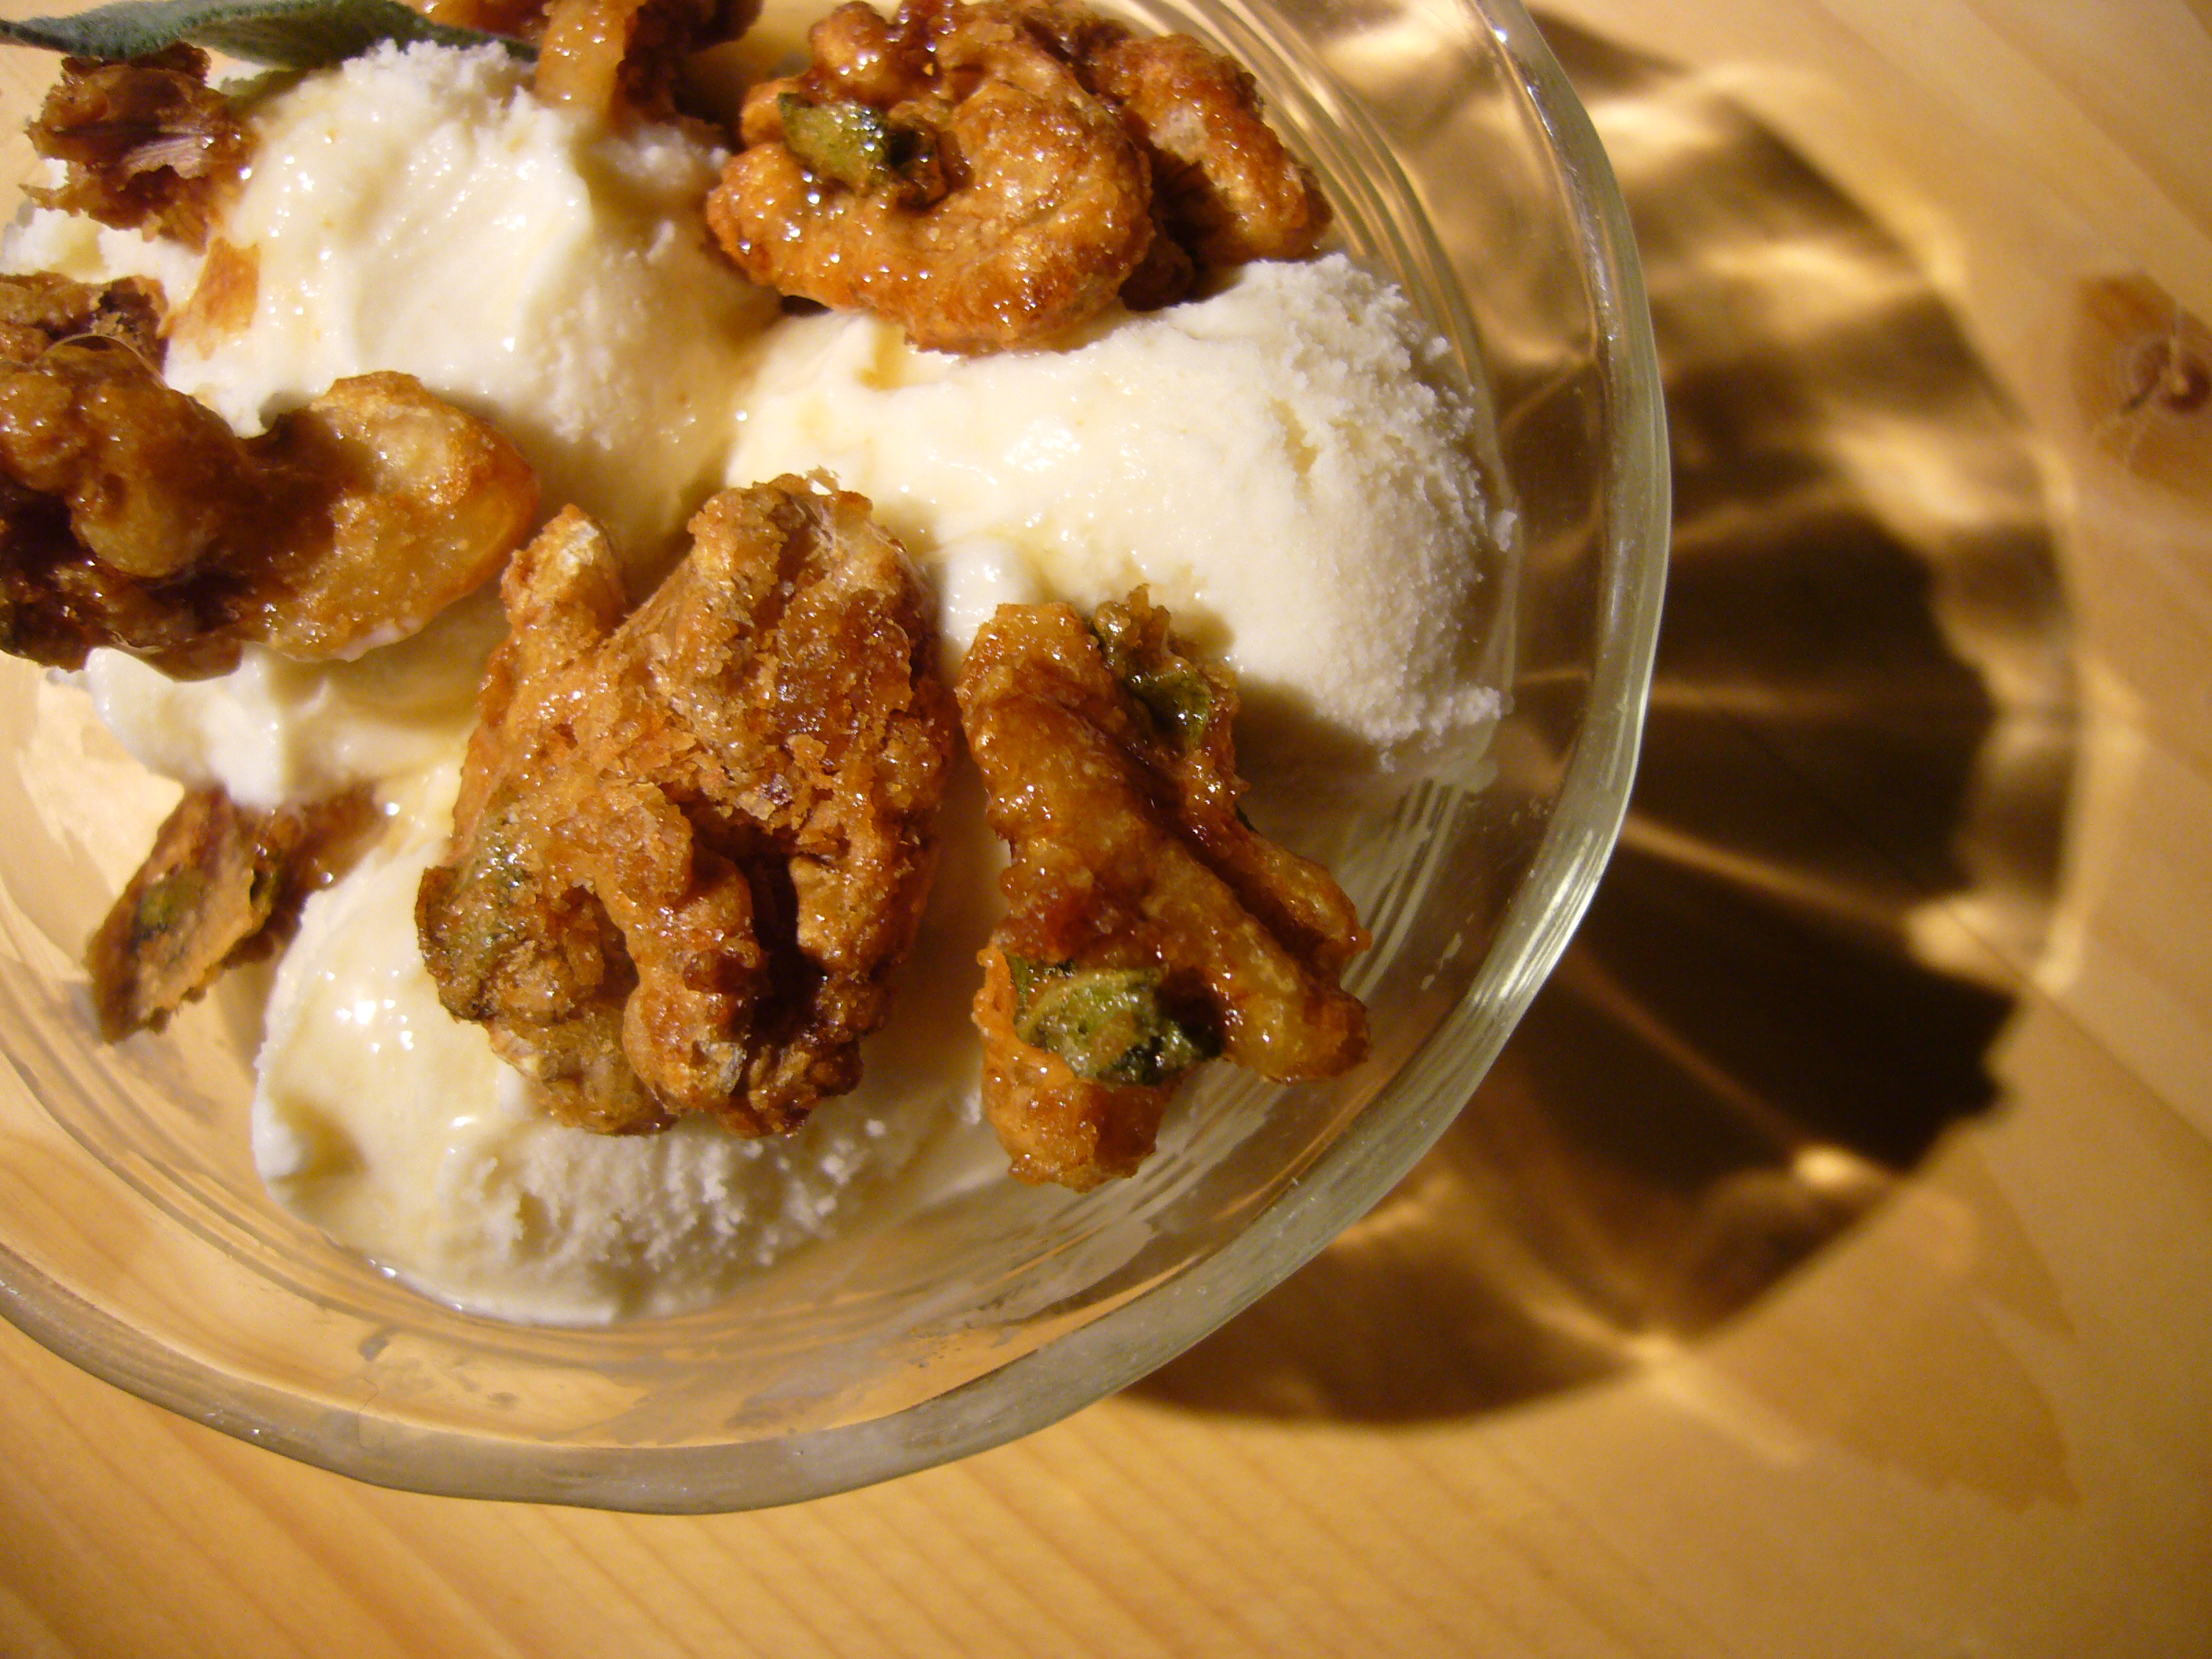 Maple-Sage Ice Cream with Maple-Sage Sugared Walnuts